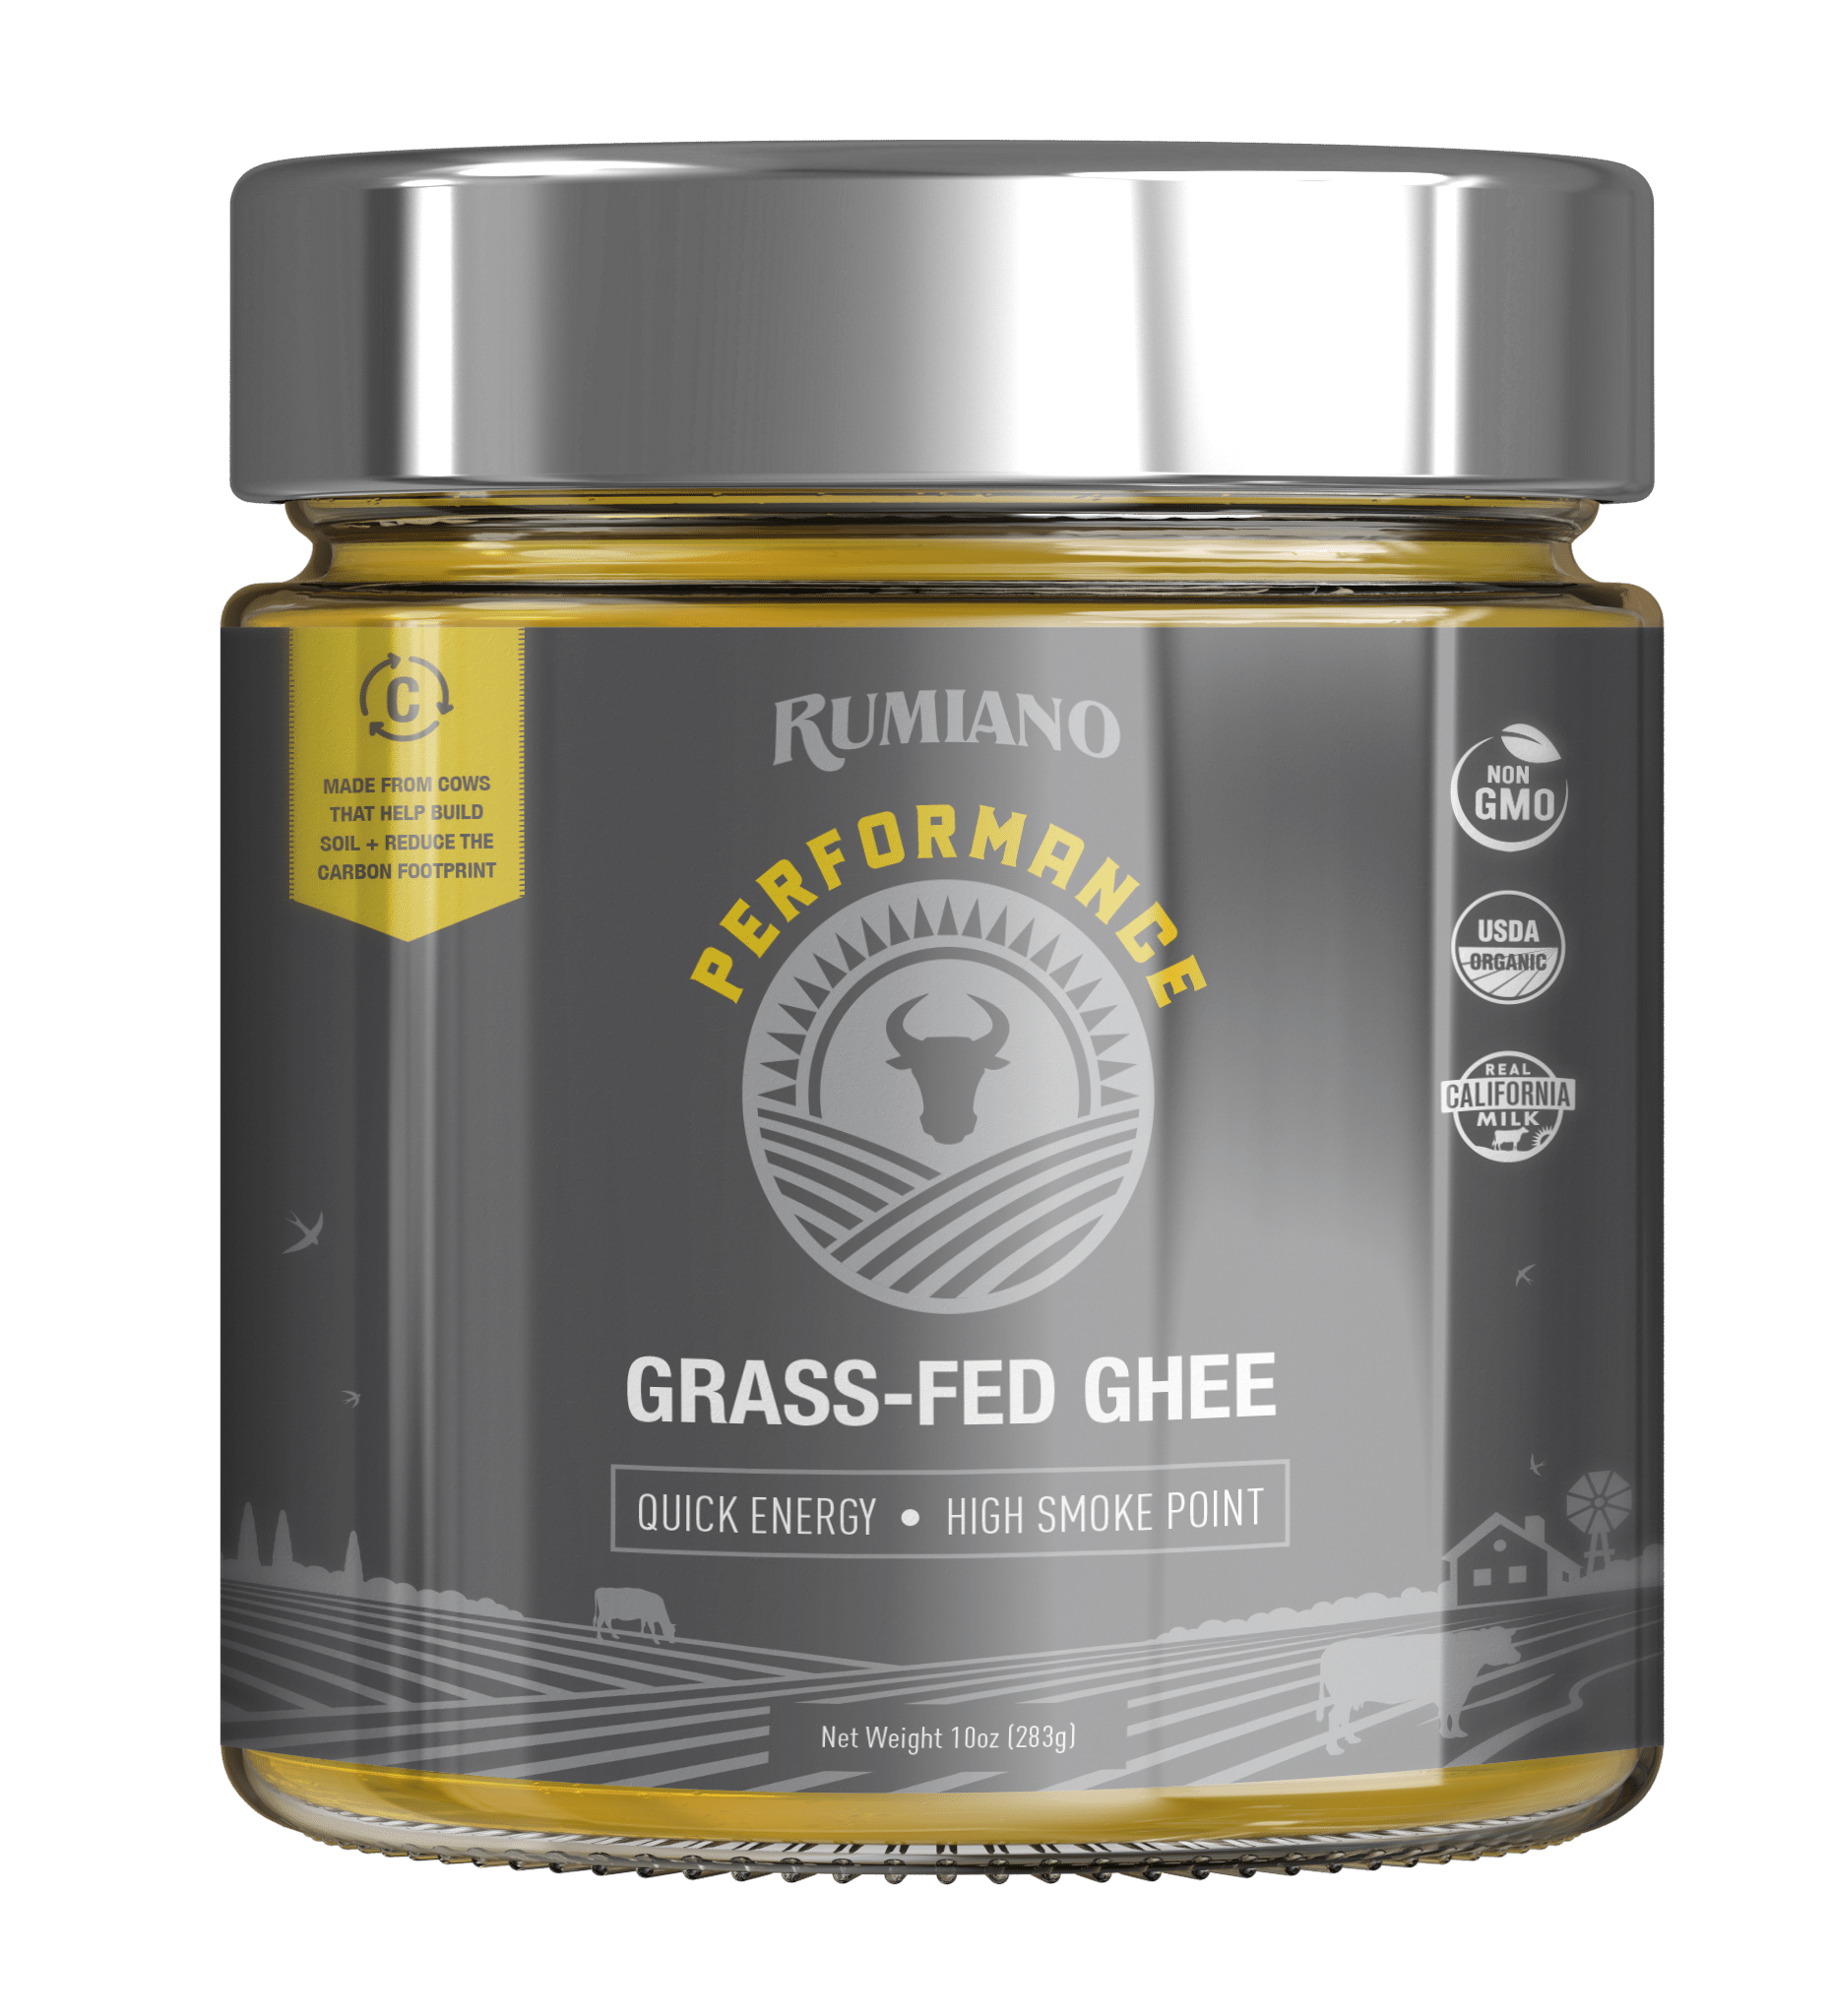 Rumiano Cheese Company Introduces Grass-Fed Ghee and Regen Butter